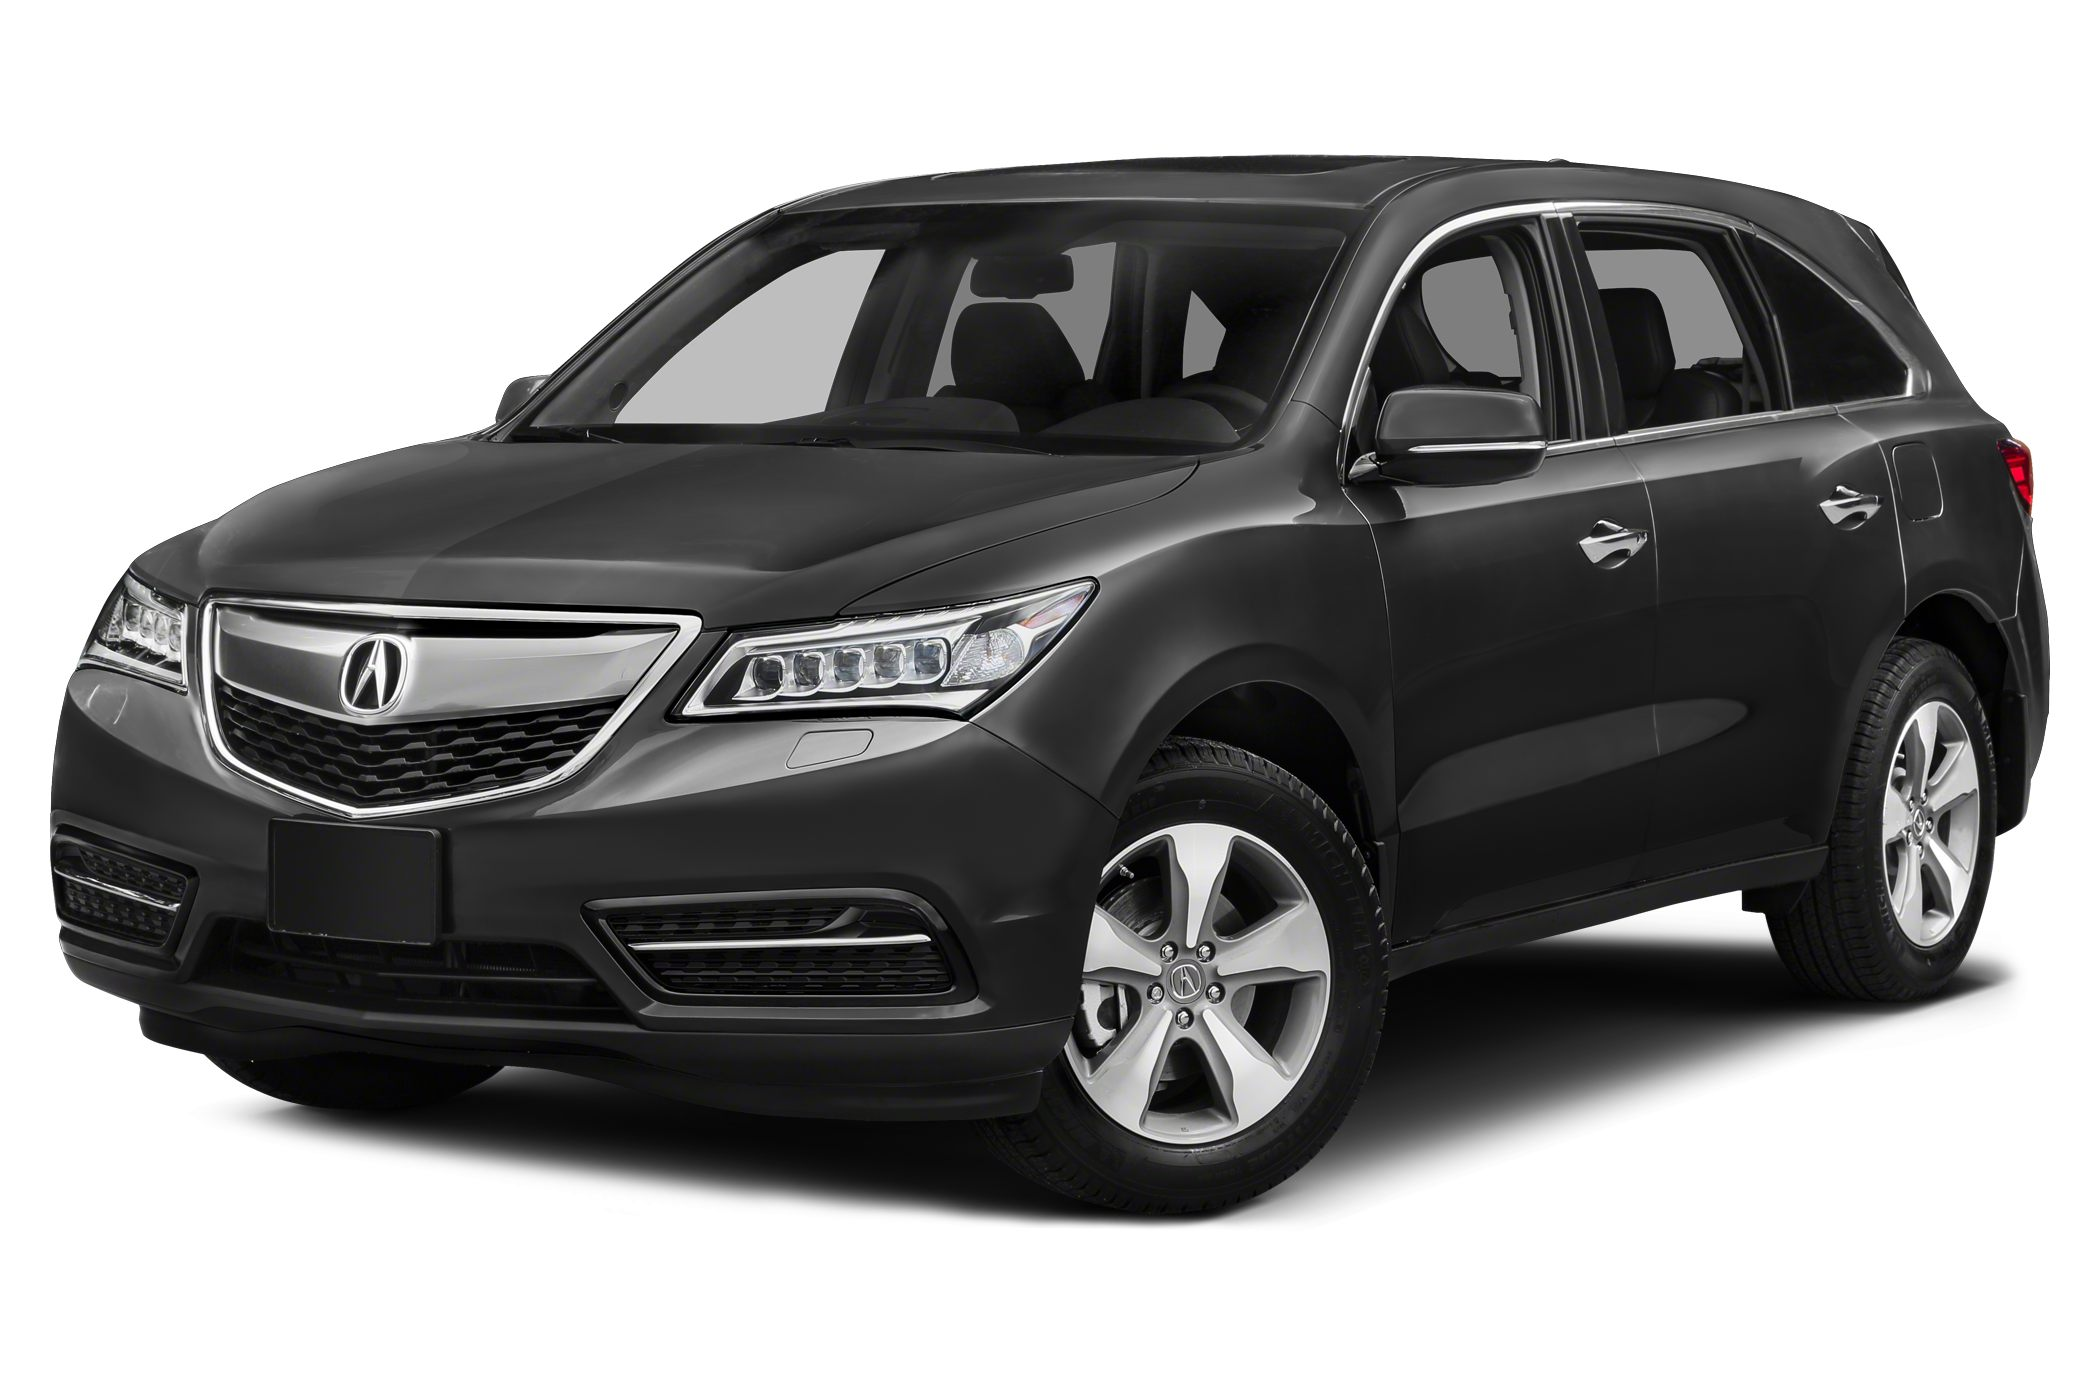 2014 Acura MDX 35 Acura Certified - Clean Carfax - One Owner - AWD - Backup Camera - Bluetooth -